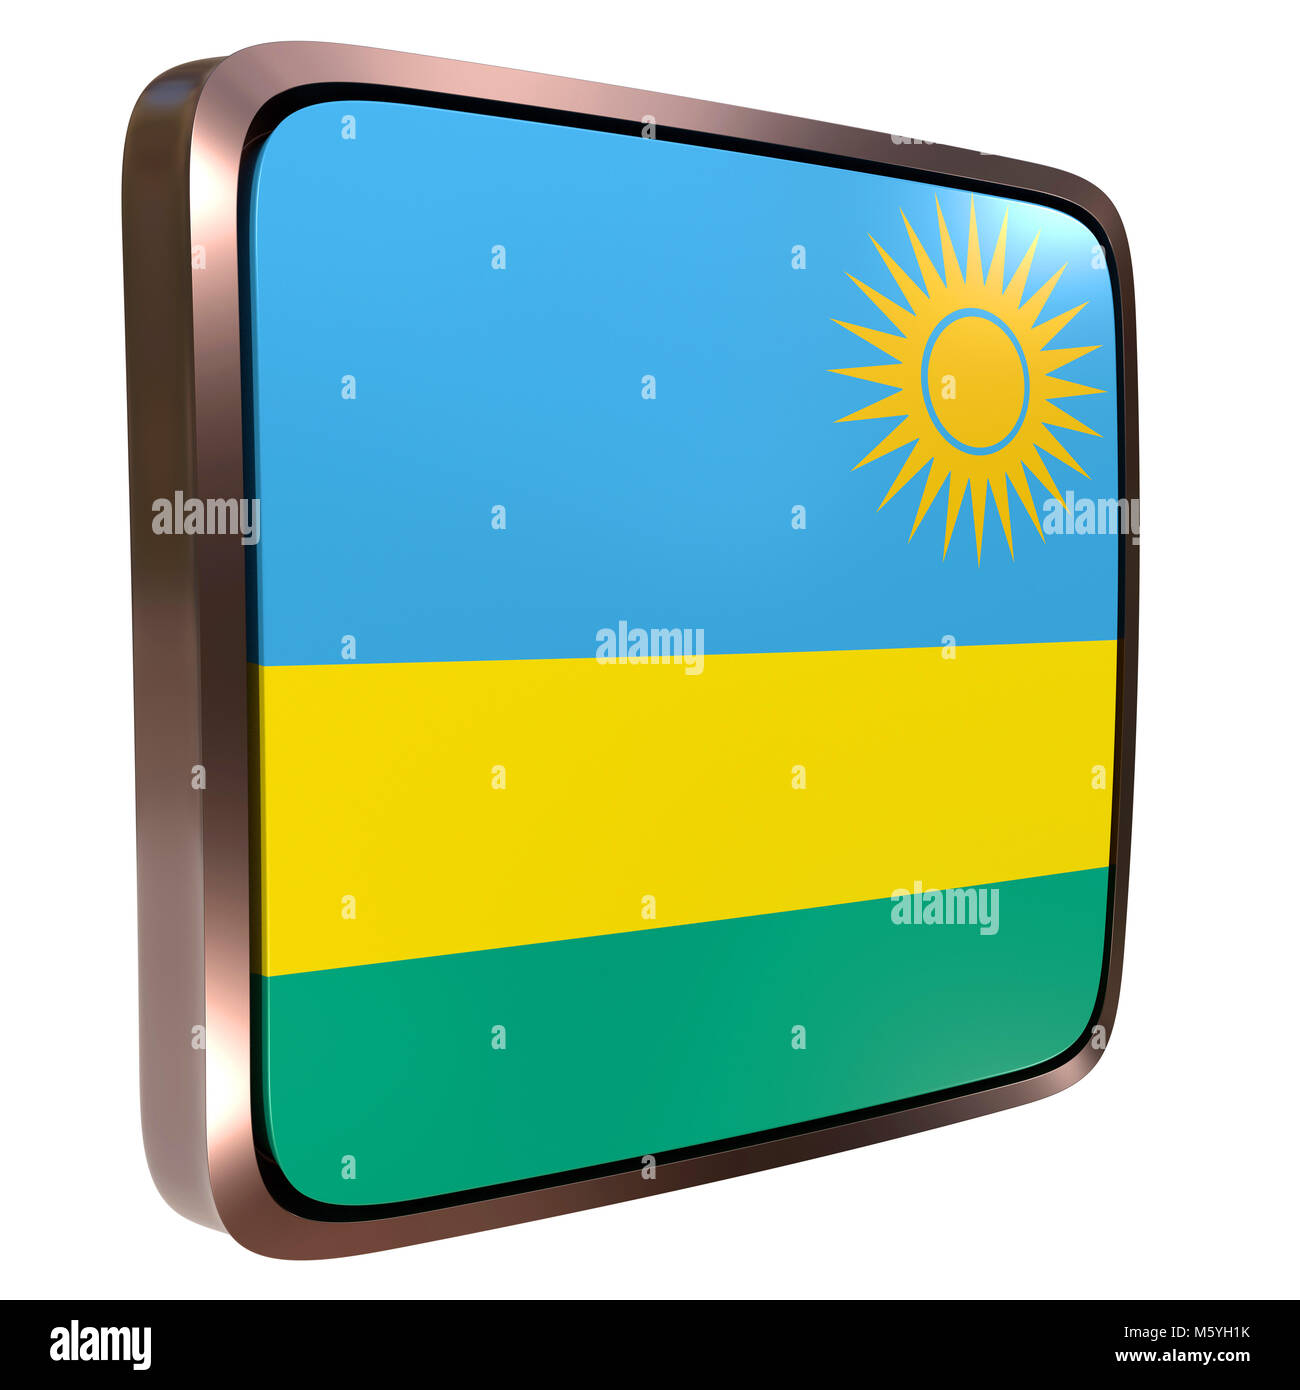 3d rendering of a Republic of Rwanda flag icon with a metallic frame. Isolated on white background. - Stock Image